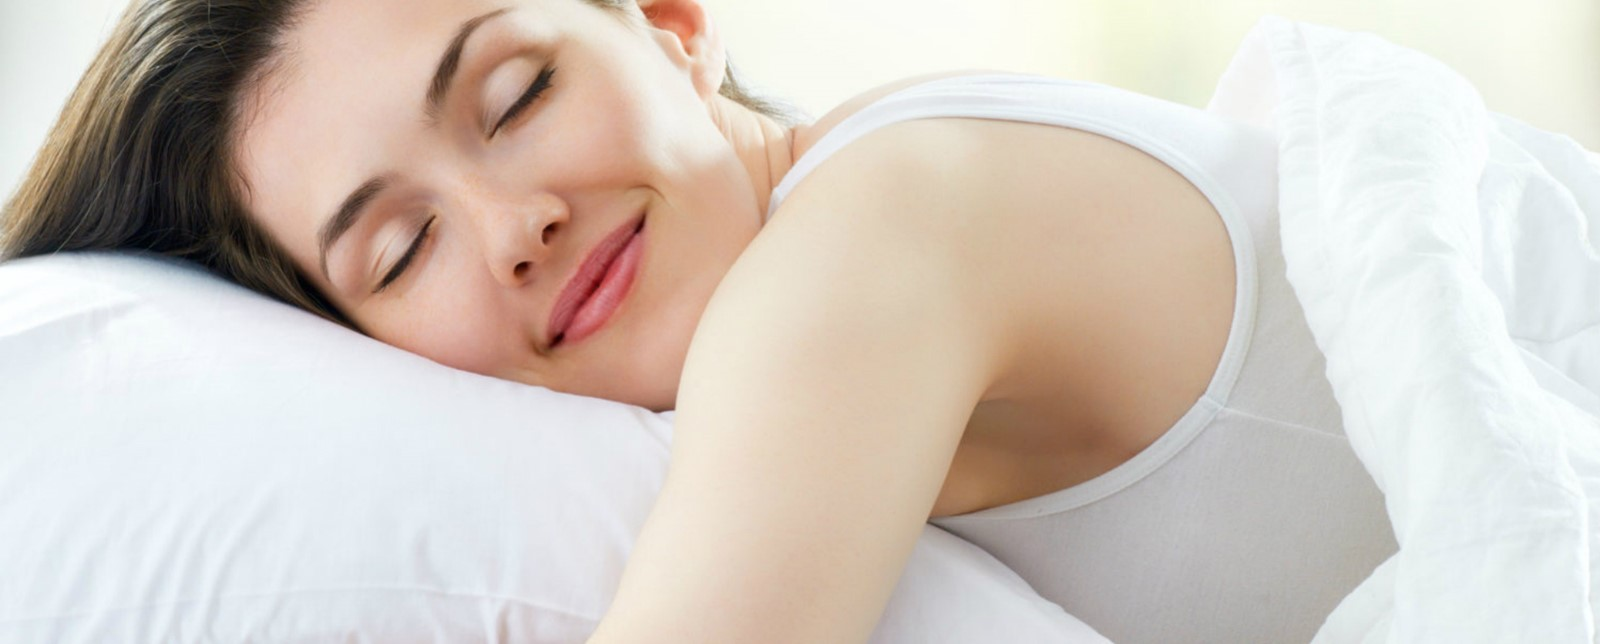 A woman sleeping and smiling